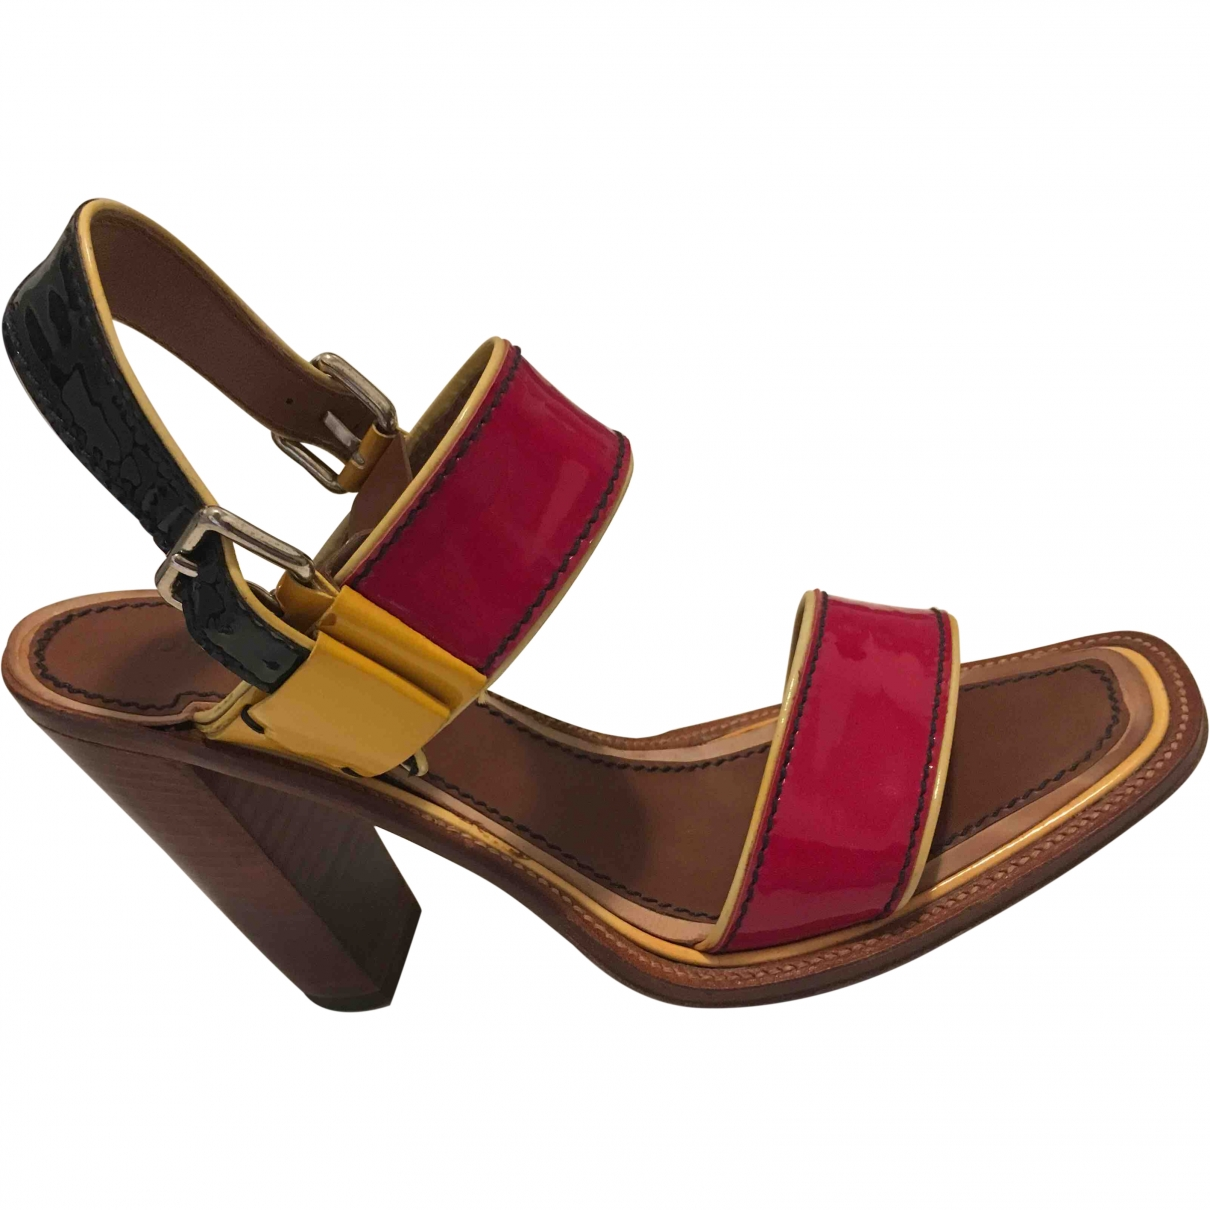 Prada \N Red Patent leather Sandals for Women 39 EU